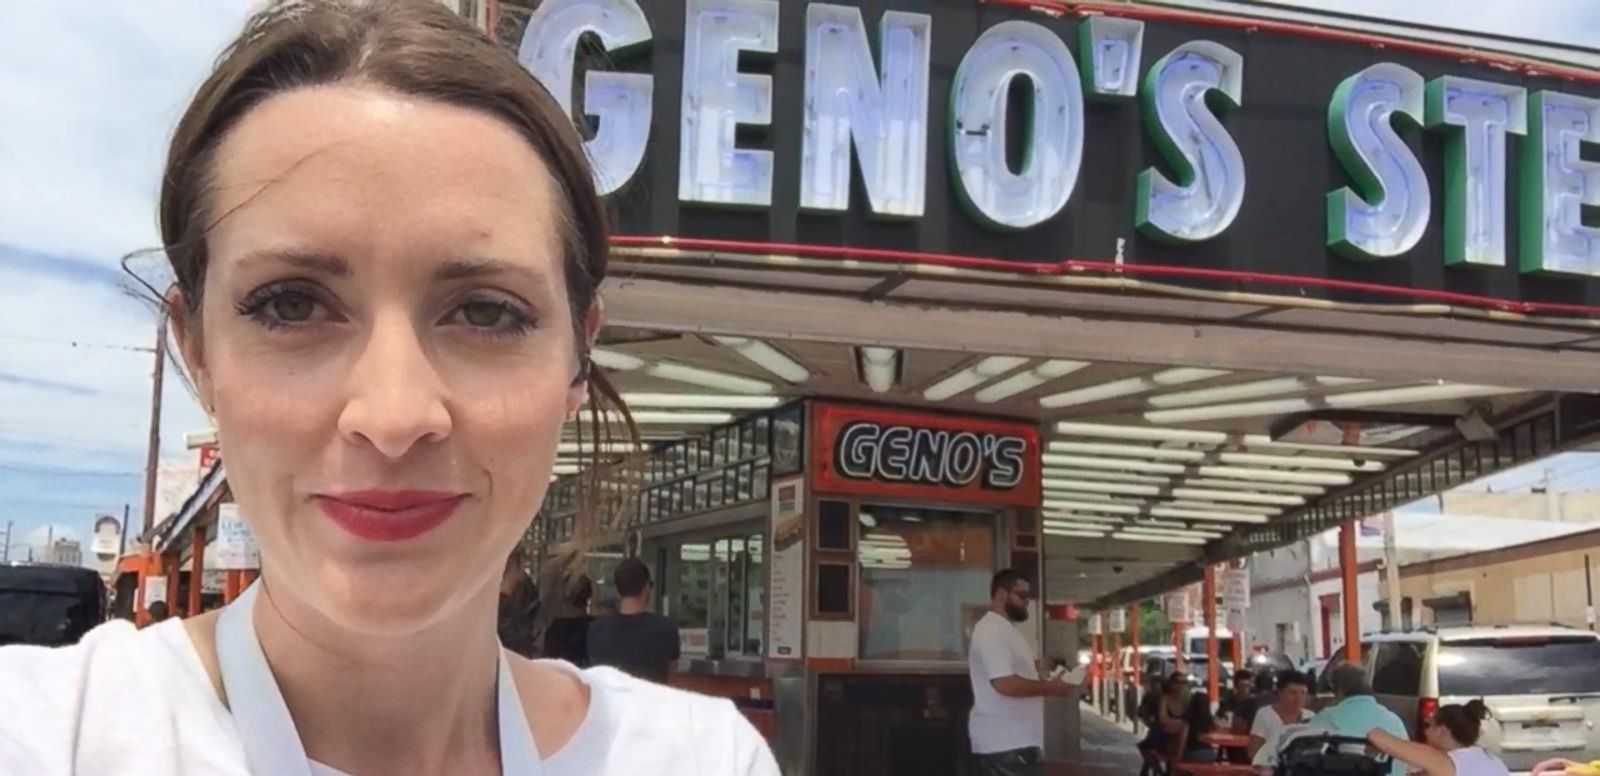 VIDEO: Meet the Man Behind Geno's Steaks